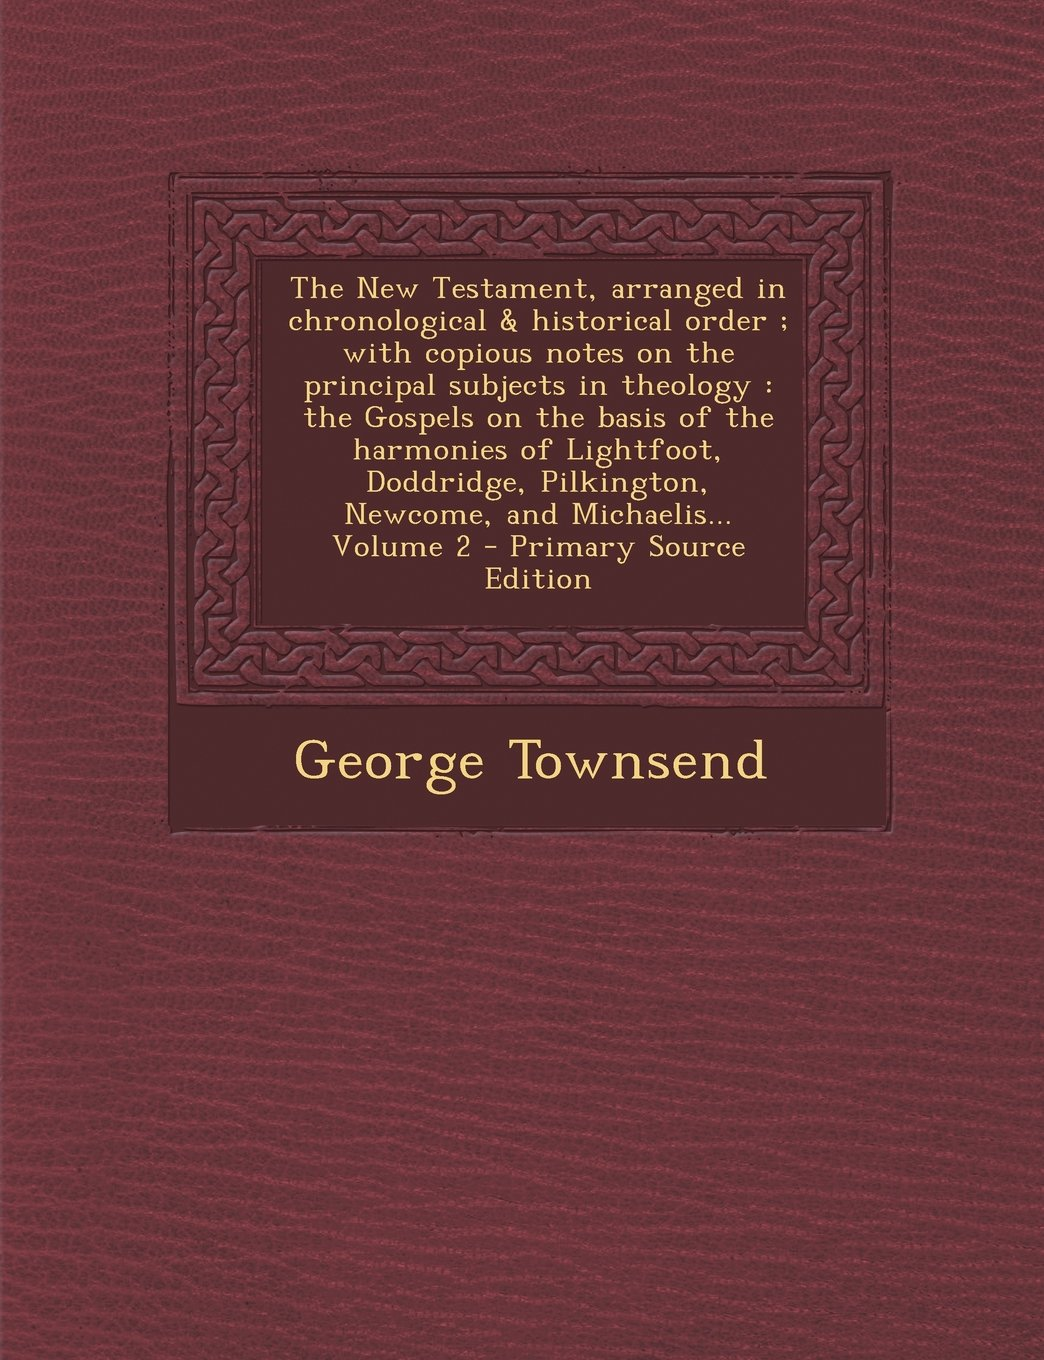 The New Testament, arranged in chronological & historical order ; with copious notes on the principal subjects in theology: the Gospels on the basis ... Newcome, and Michaelis... Volume 2 pdf